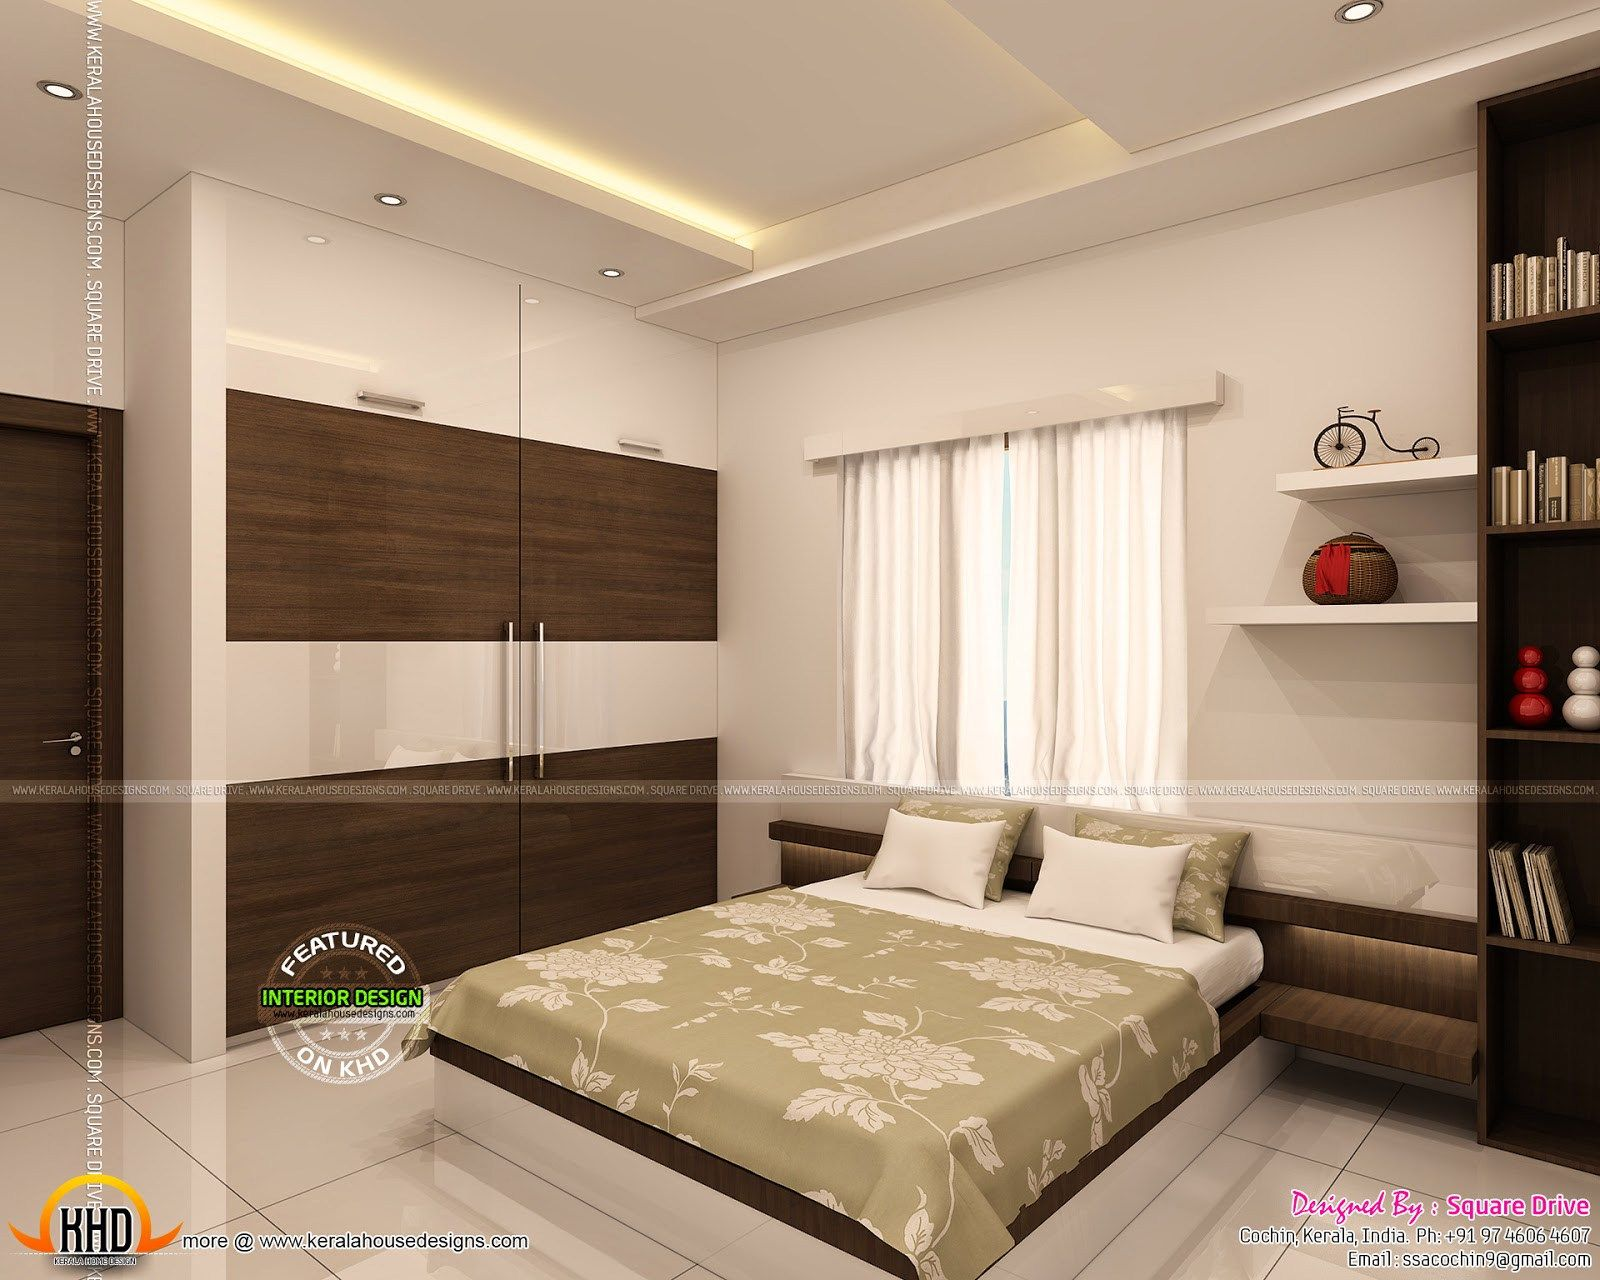 Trendy Bedroom Interior Designs Kerala Home Design Floor Plans Container